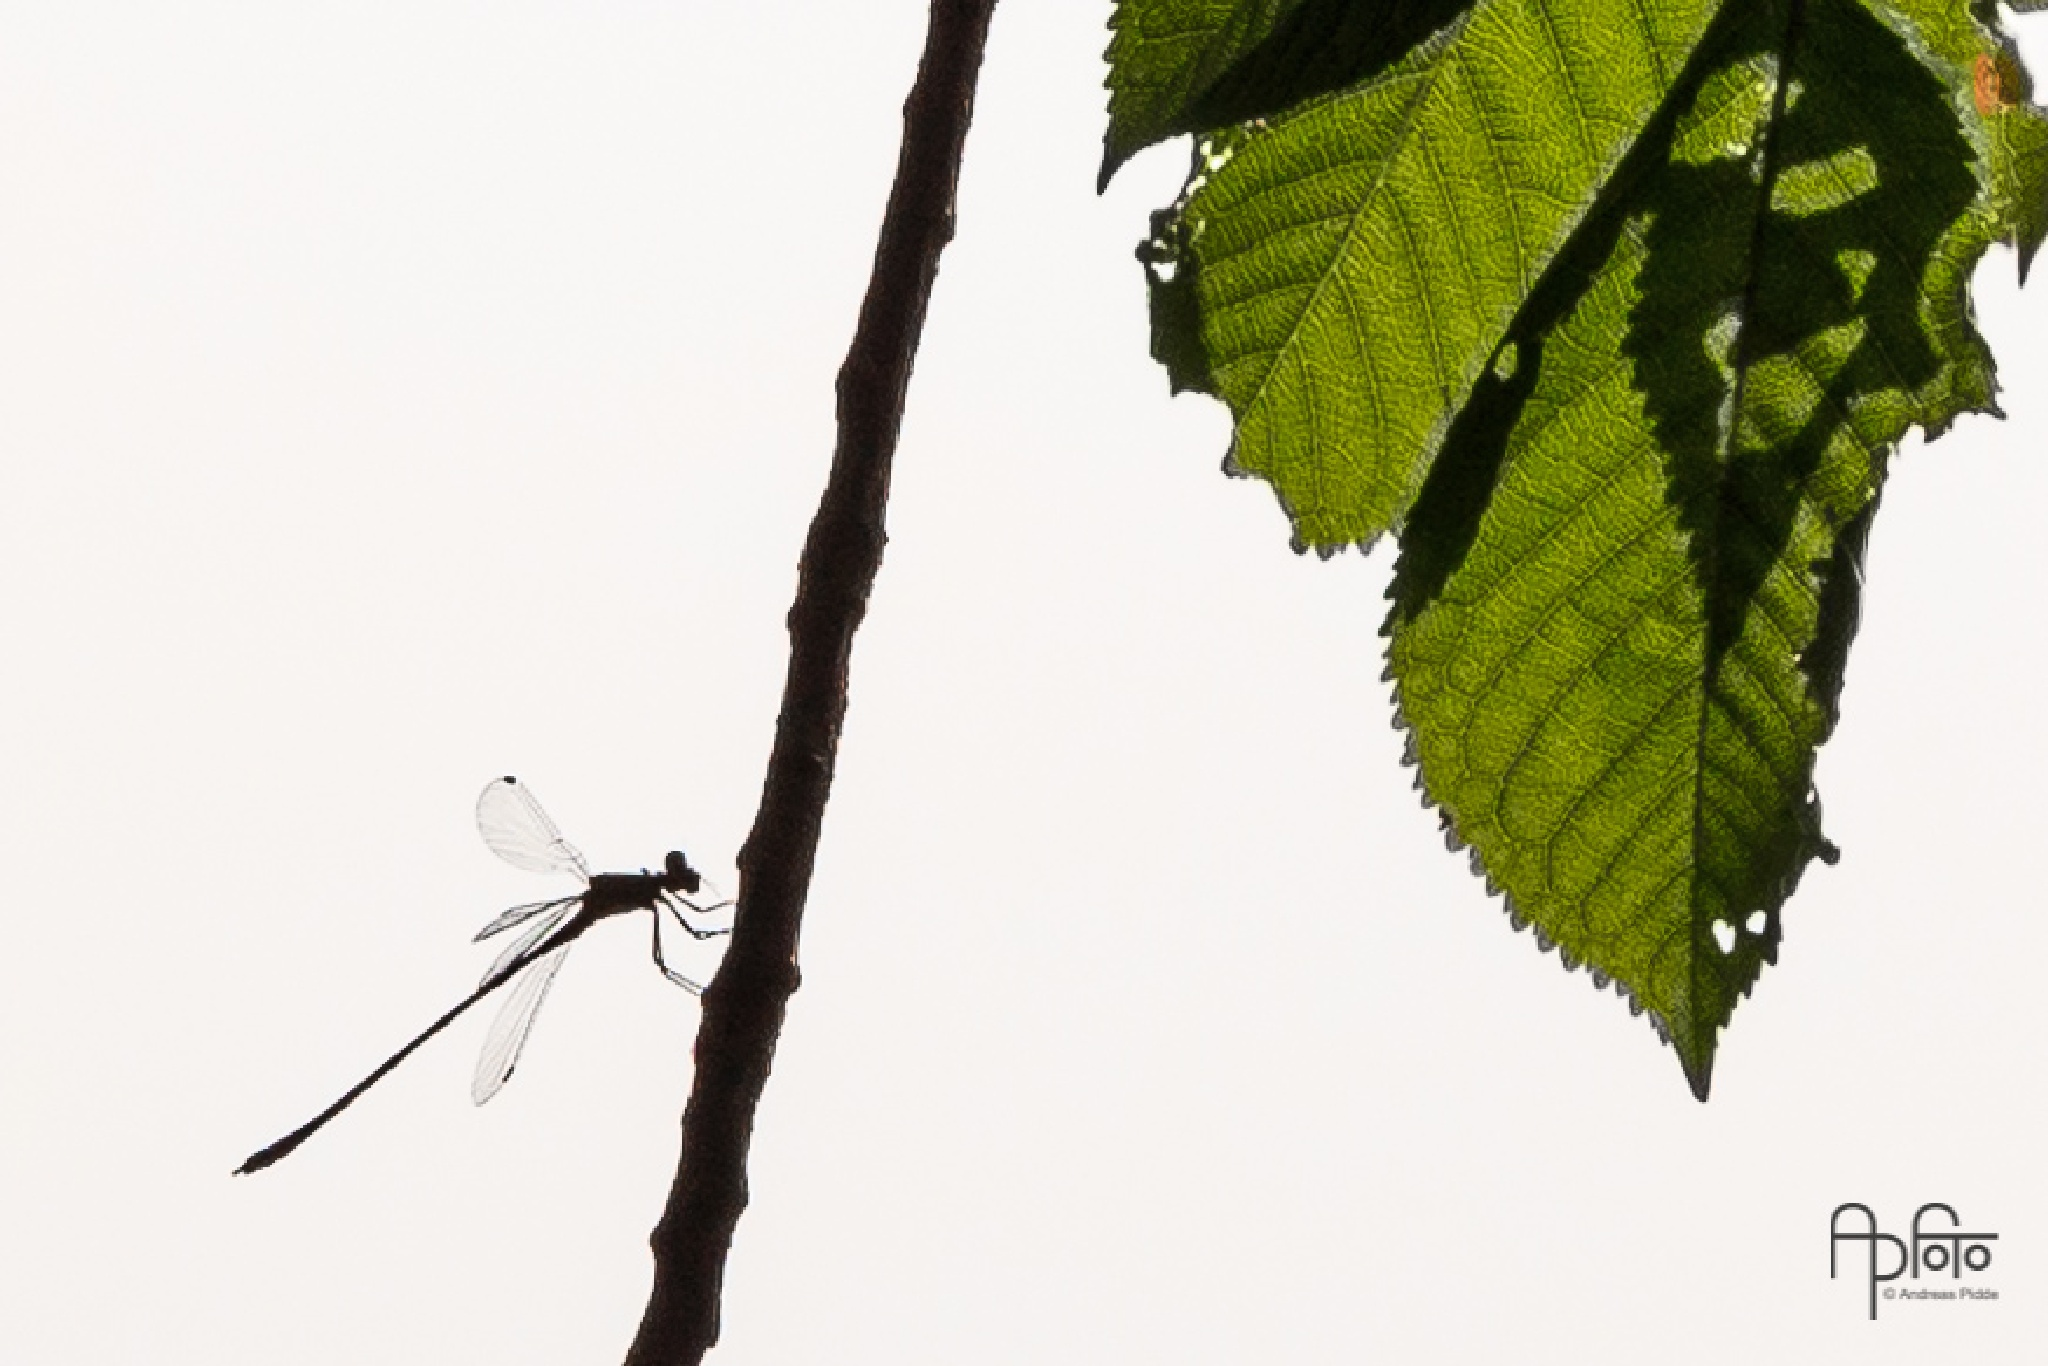 Damselfly Silhouette by Andreas Pidde